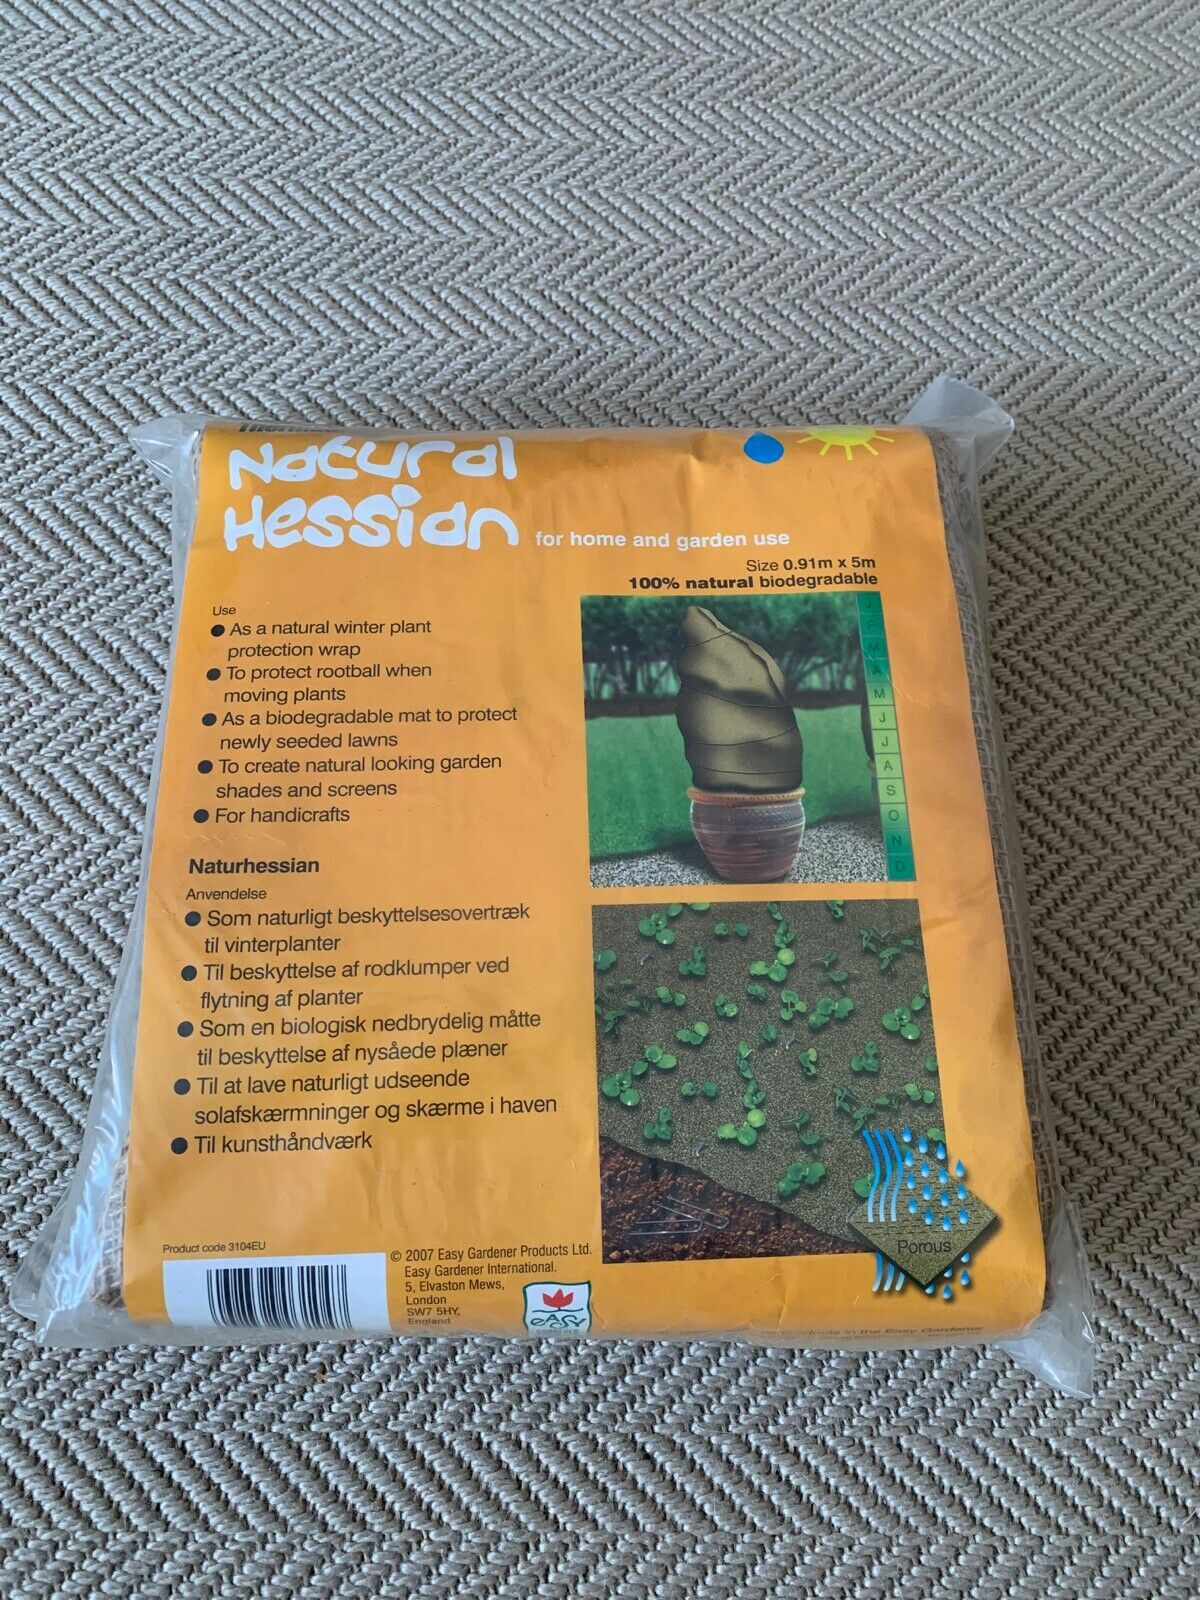 100% Bio Hessian blanket .9m x 5m frost cover, new seed protect, privacy screen